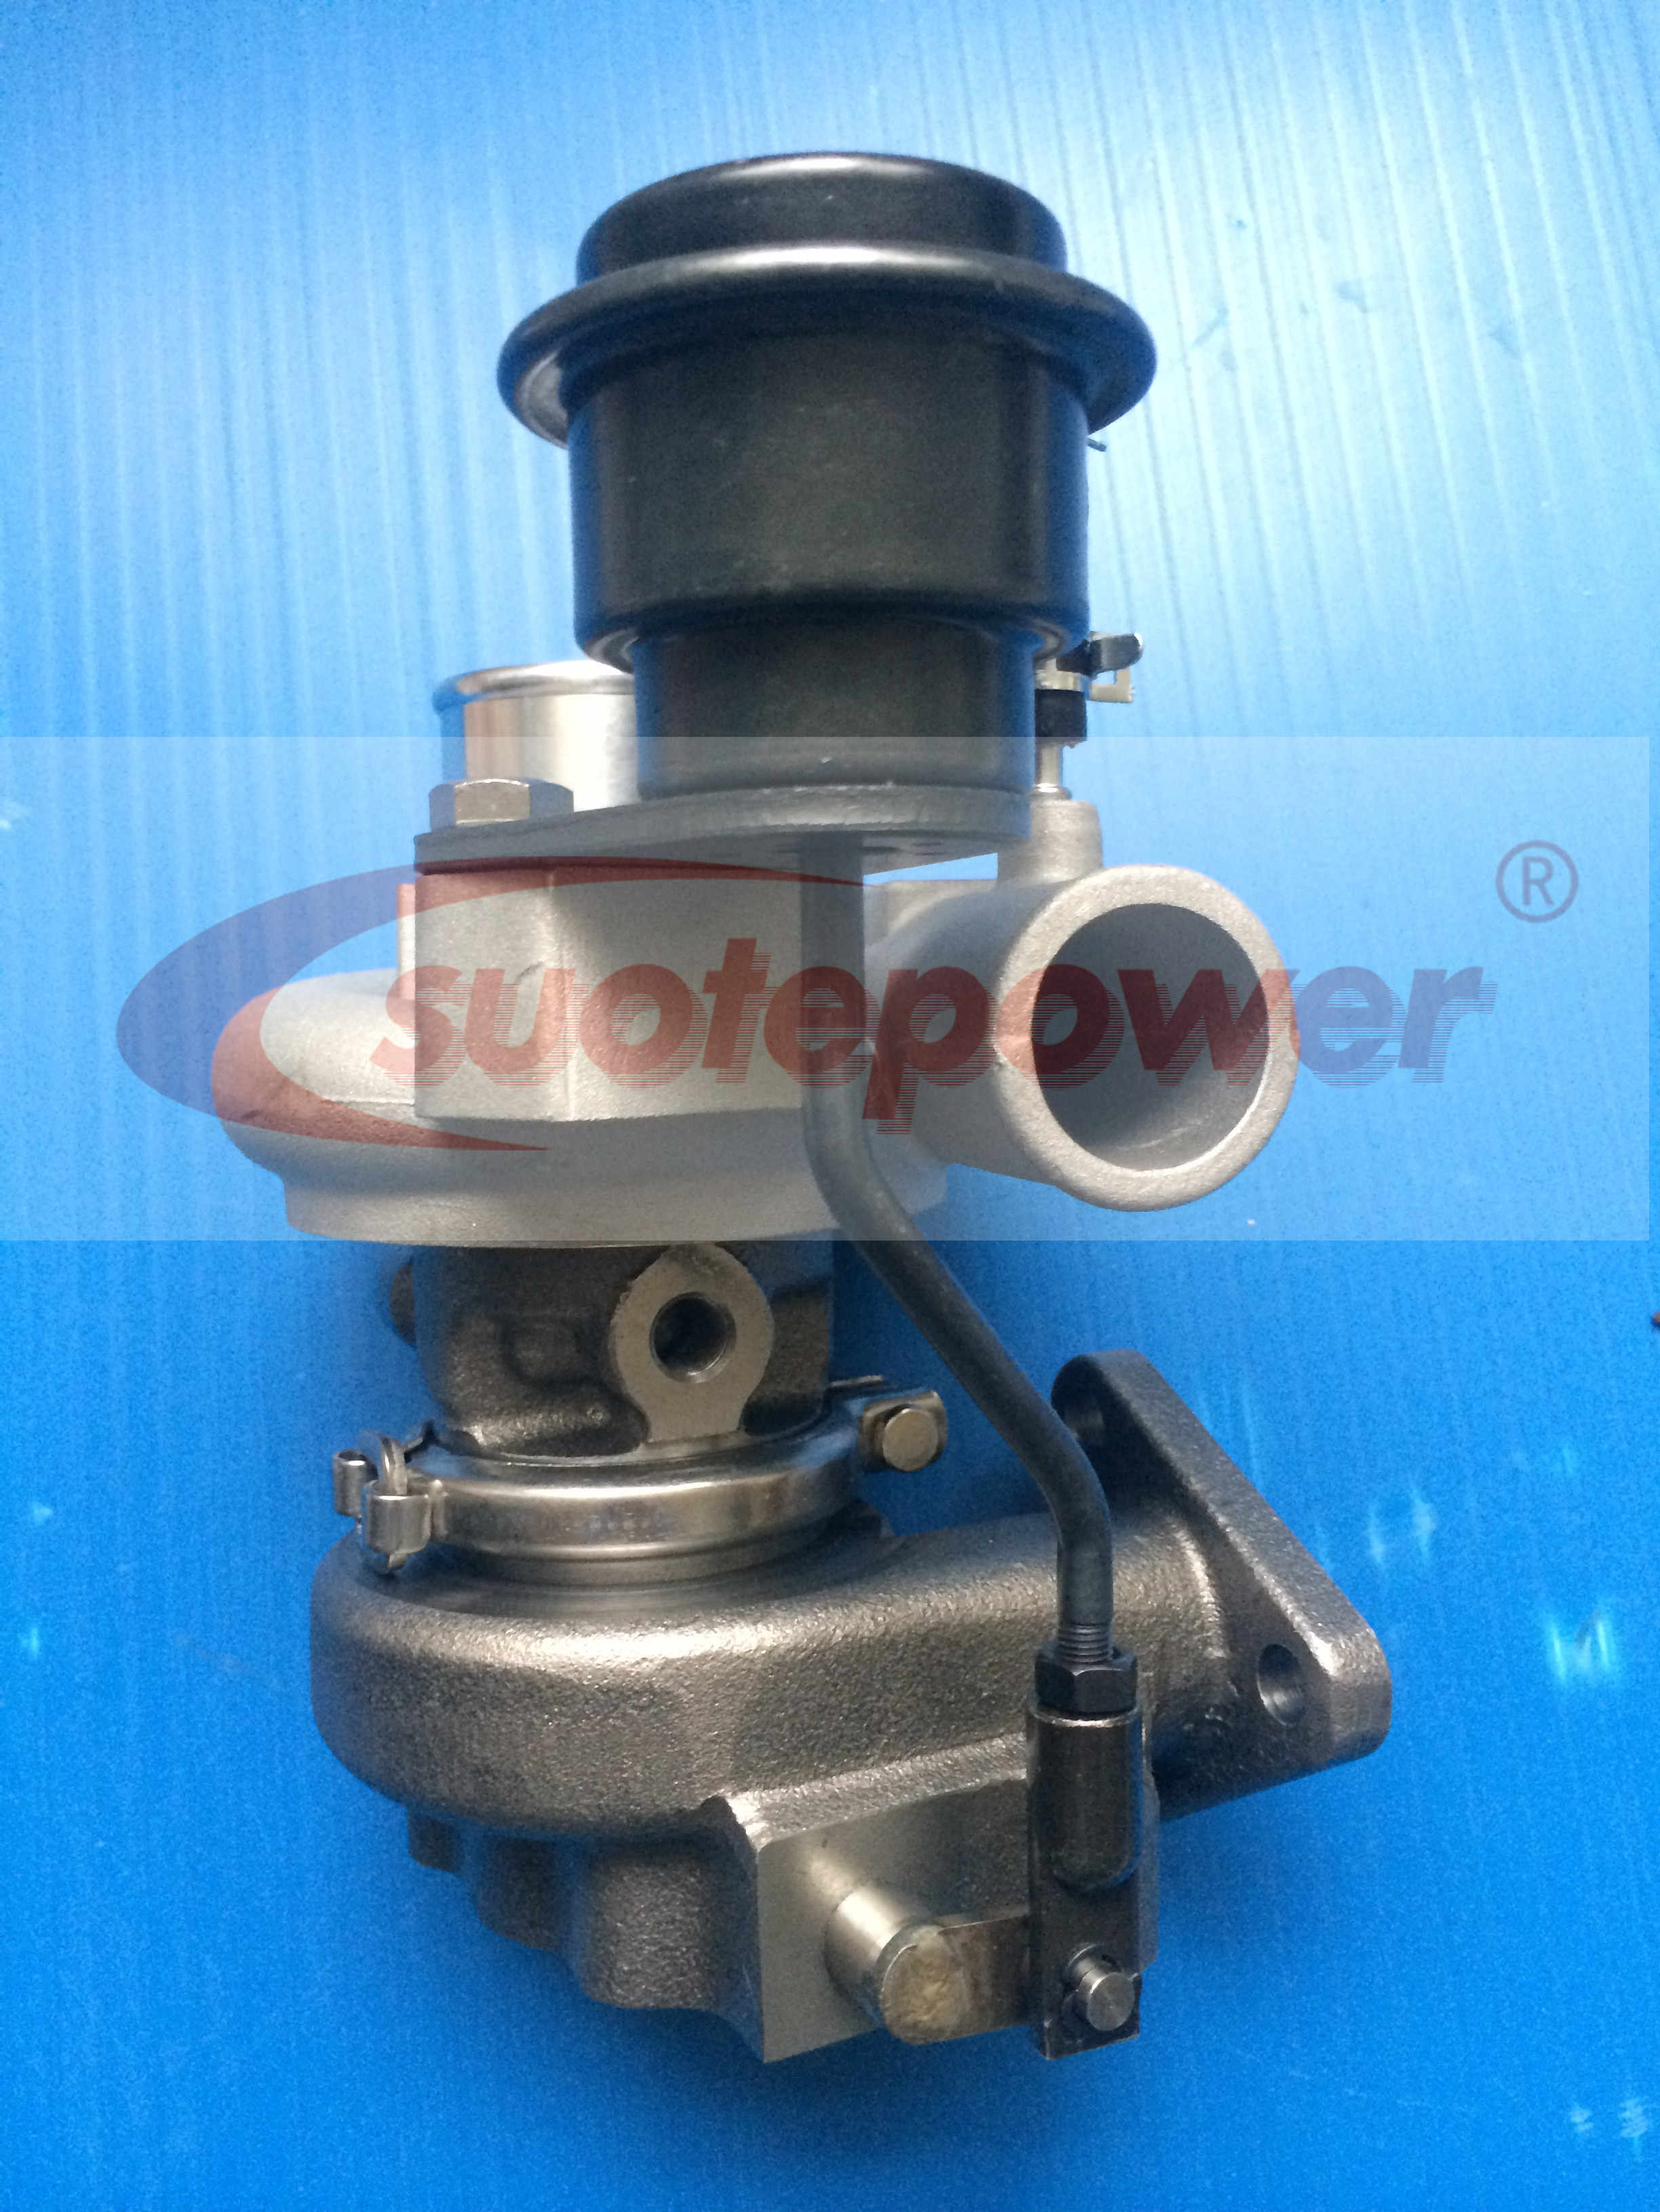 Hyundai Accent Turbo : hyundai, accent, turbo, Suotepower, Turbo, TD025, TURBOCHARGER, 28231, 27500, 49173, 02622, HYUNDAI, ACCENT, Engine, 1.5CRDI|Turbo, Chargers, Parts|, AliExpress